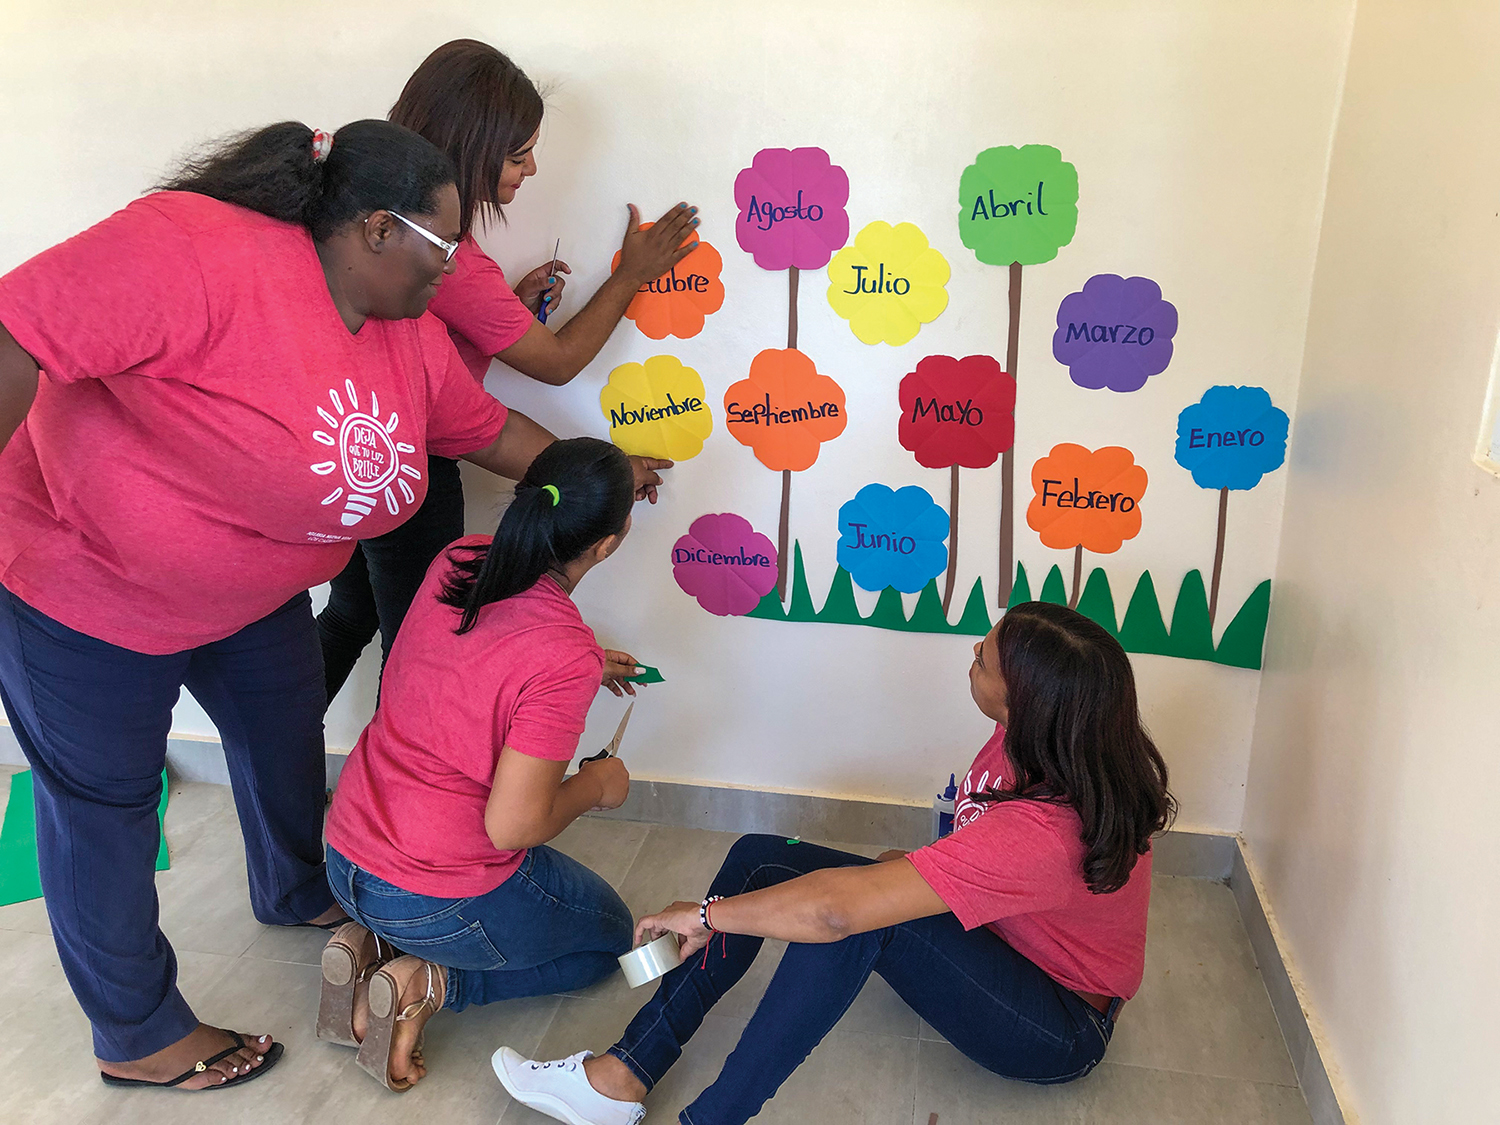 The teachers are putting up a mural with the months of the year in one of the preschool classrooms. Our students, teachers, and directors are so excited and happy for classes to begin later this month.